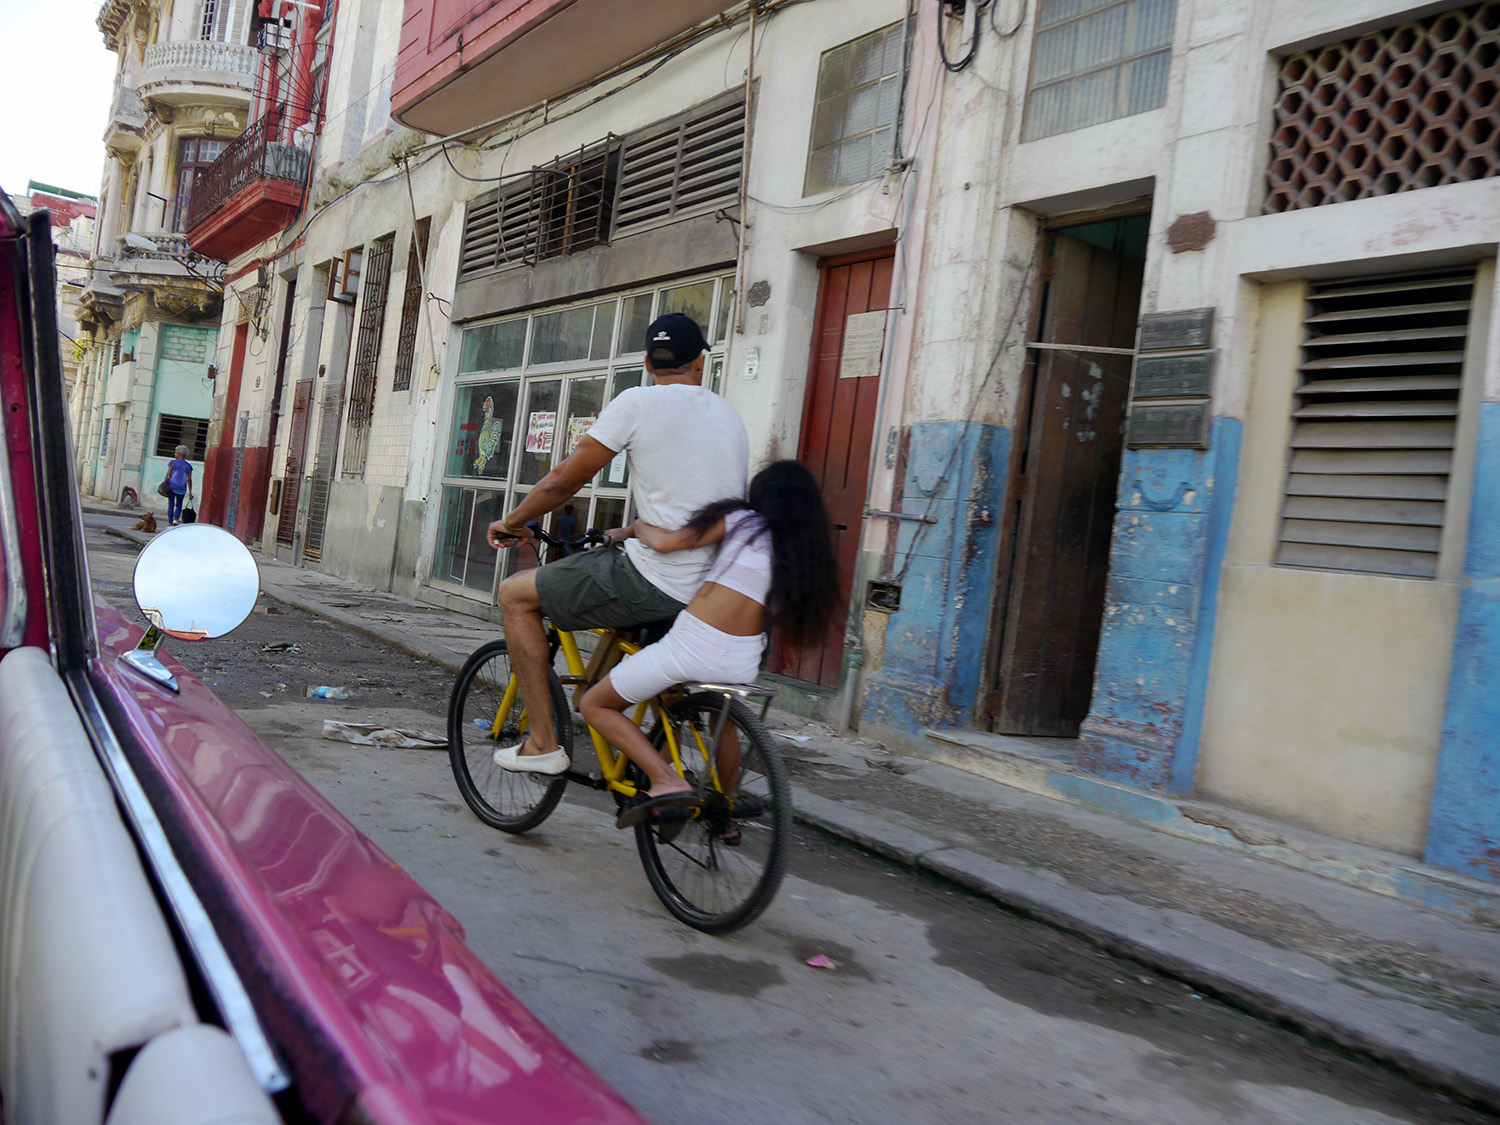 A woman hugs the back of a man on a bicycle in Havana.